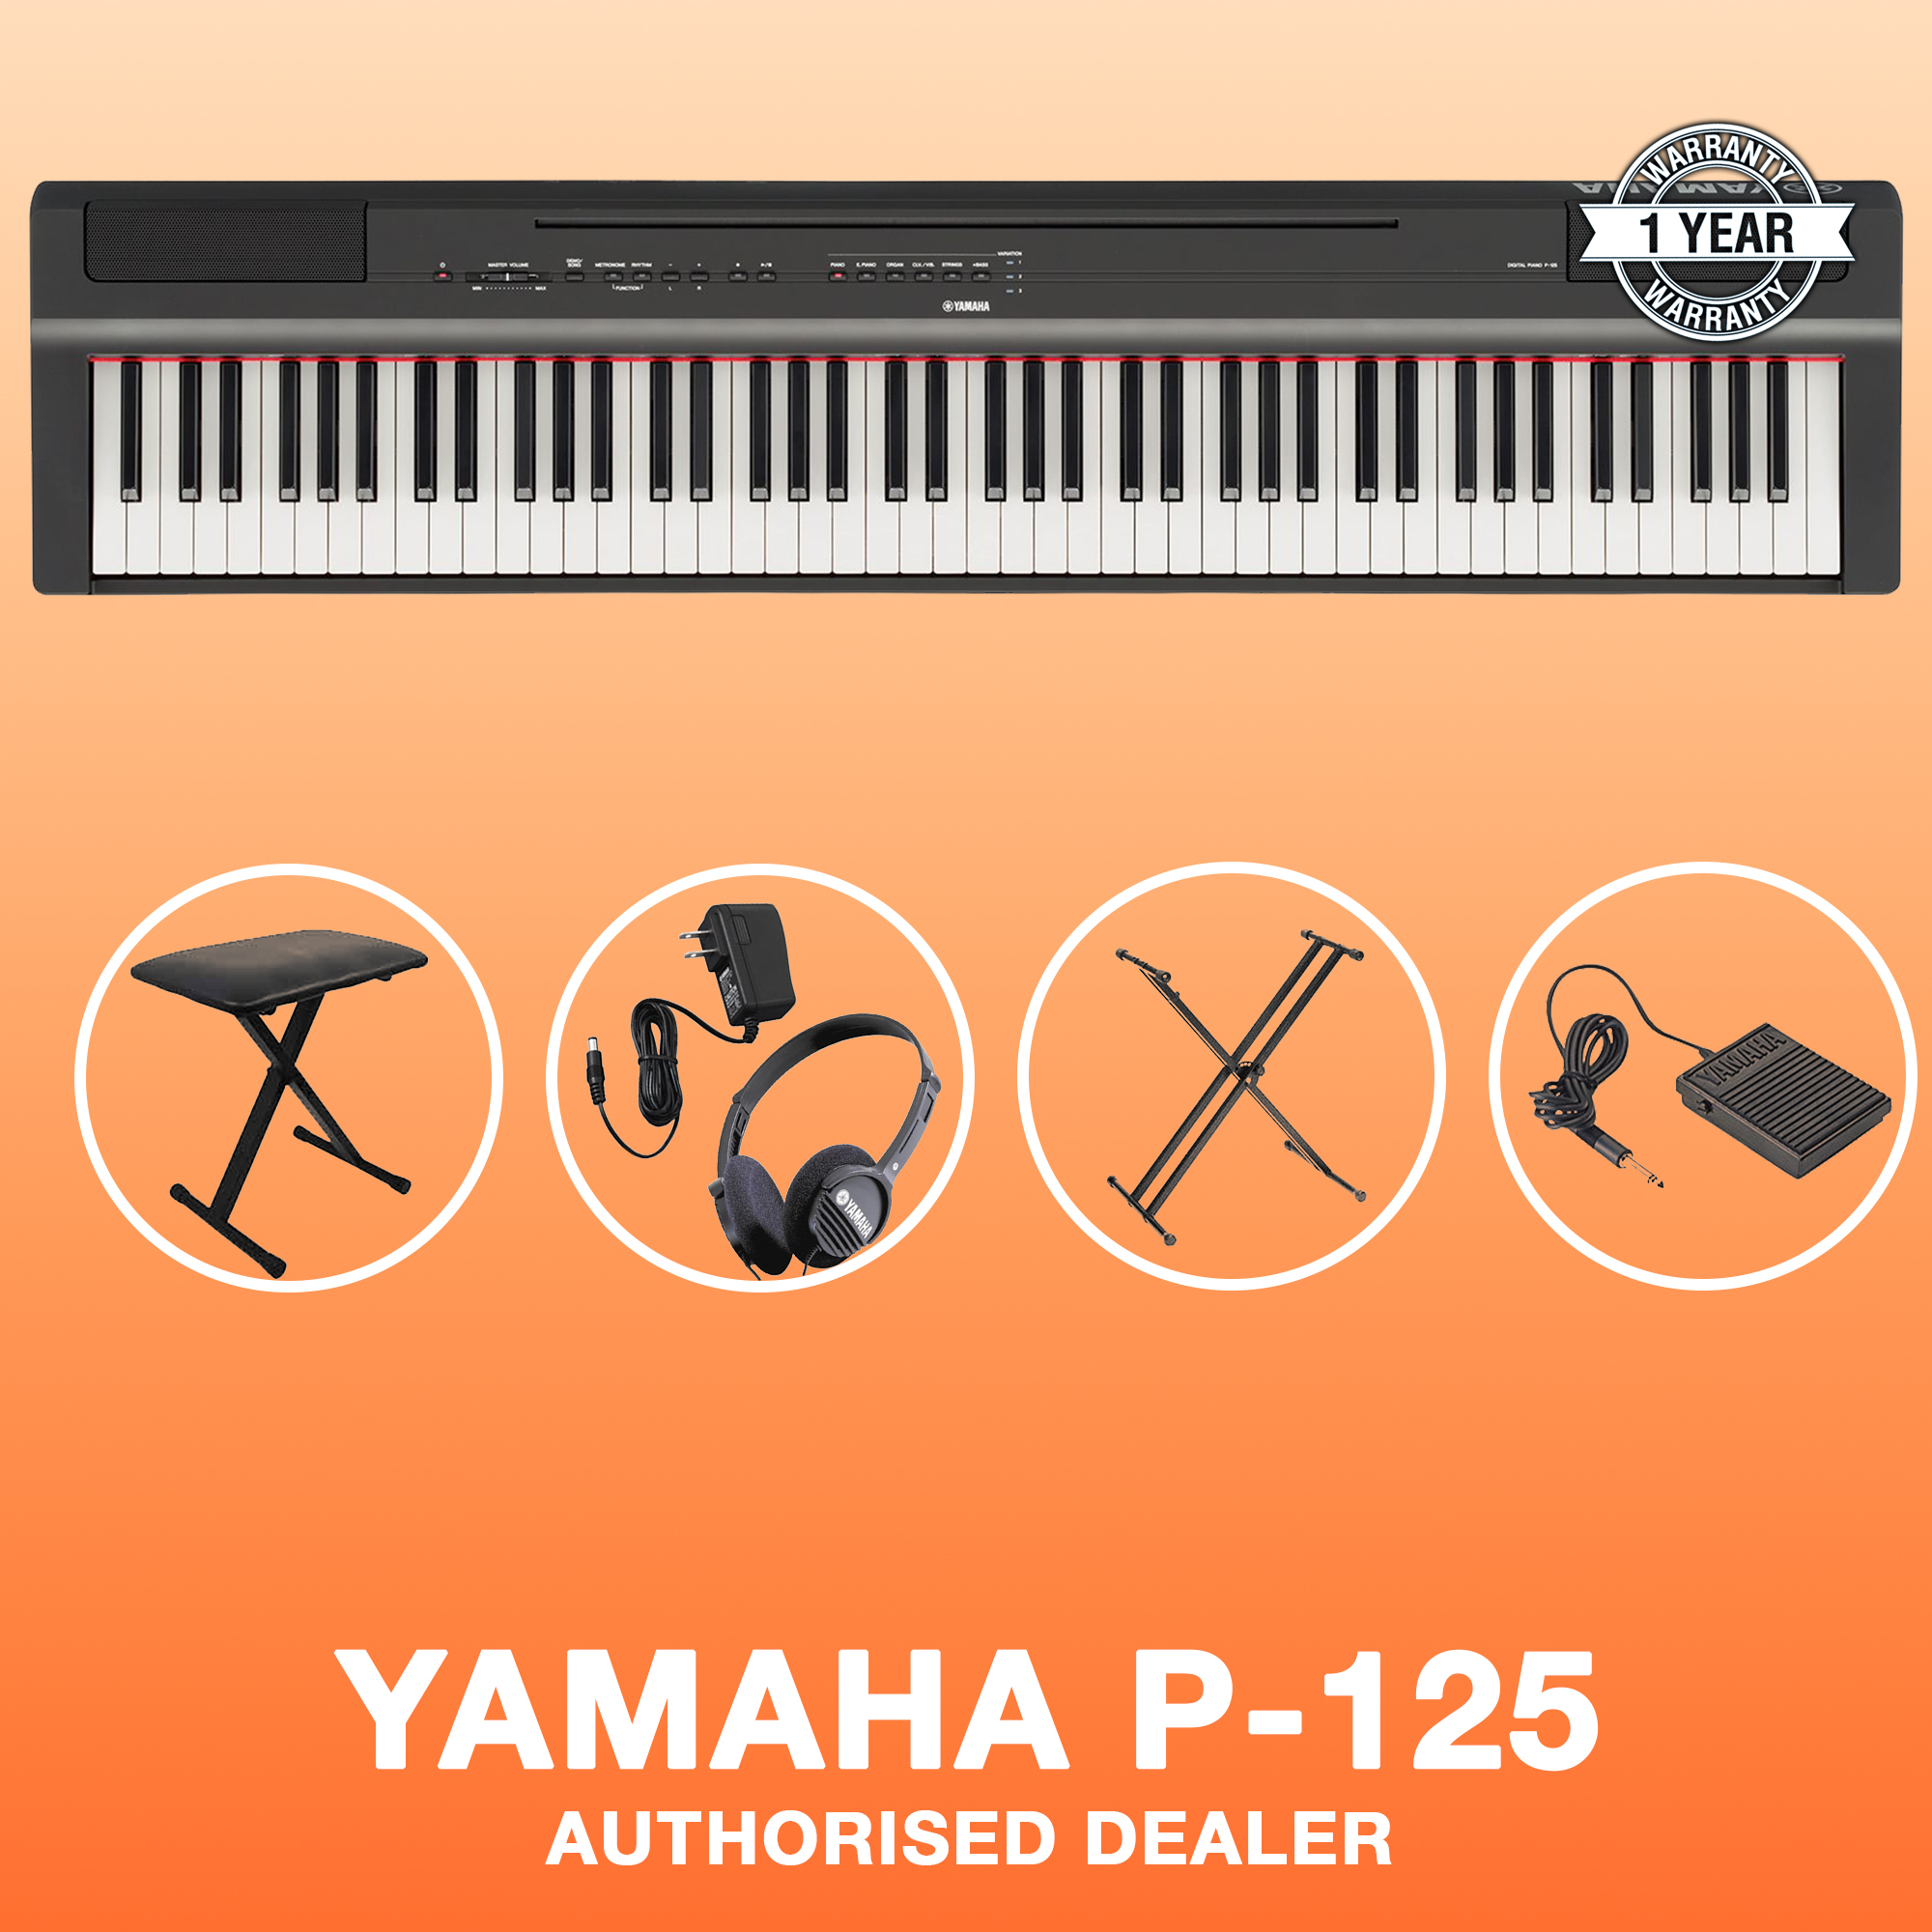 Powerblock Singapore: Yamaha P-125 Digital Piano